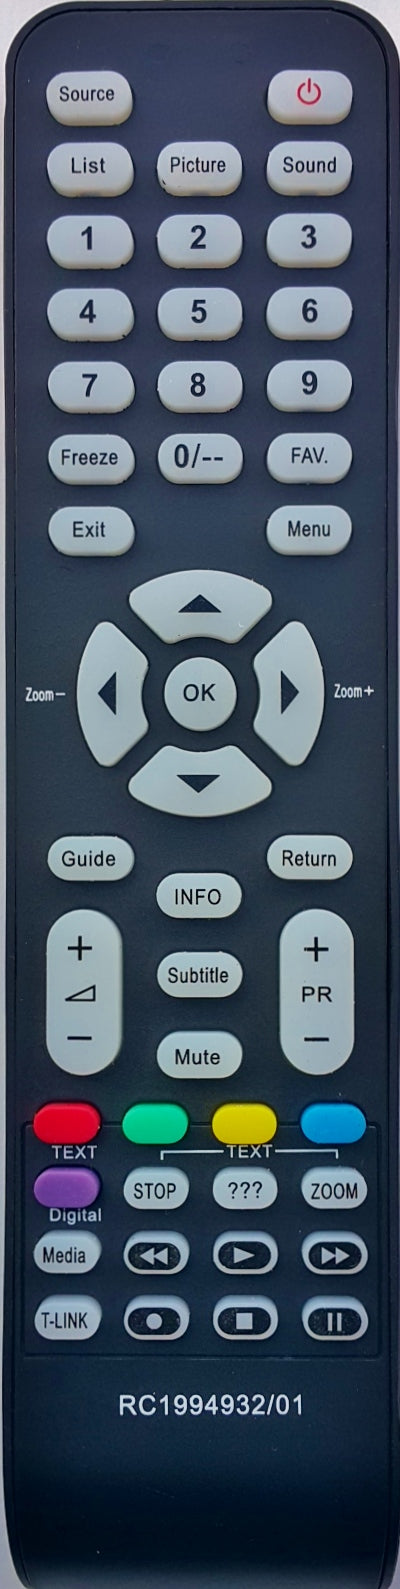 REPLACEMENT TCL REMOTE CONTROL RC1994932/01 -  L26M9HD L32M9HD L42M9FHD L32M11HD L40M11FHD L19M19  L22M19 L32M19  L32P10FHD L32P10R L42P10FZ  L55P10FHD  L32P11FZE  L40P11FZE  L46P11FZE  L55P11FZ - Remote Control Warehouse